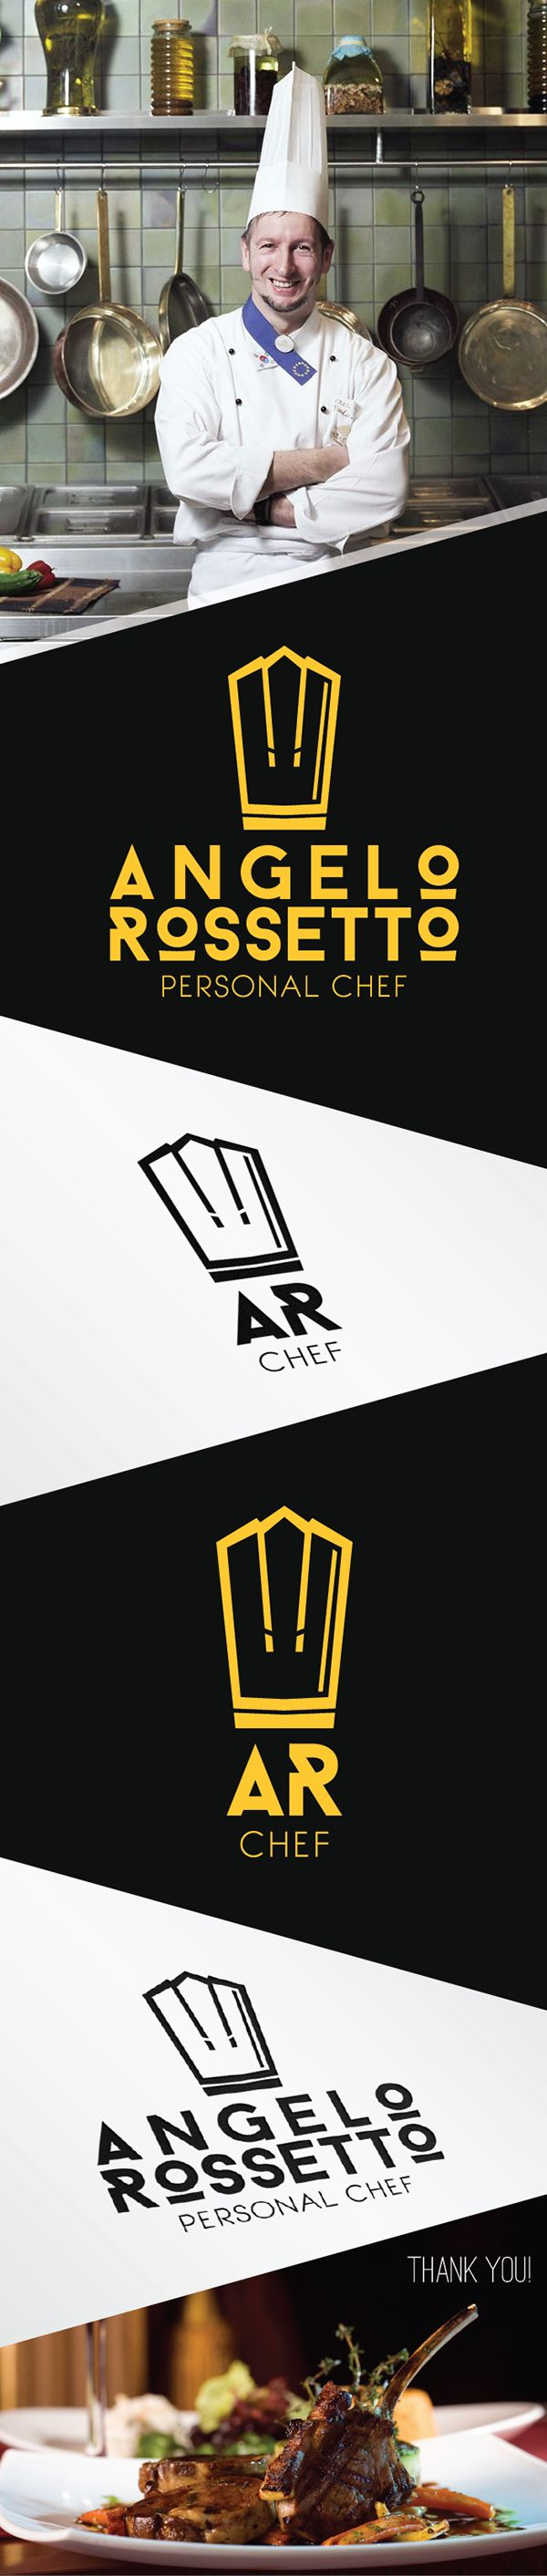 Chef Ângelo Rossetto -Identidade Visual on Behance